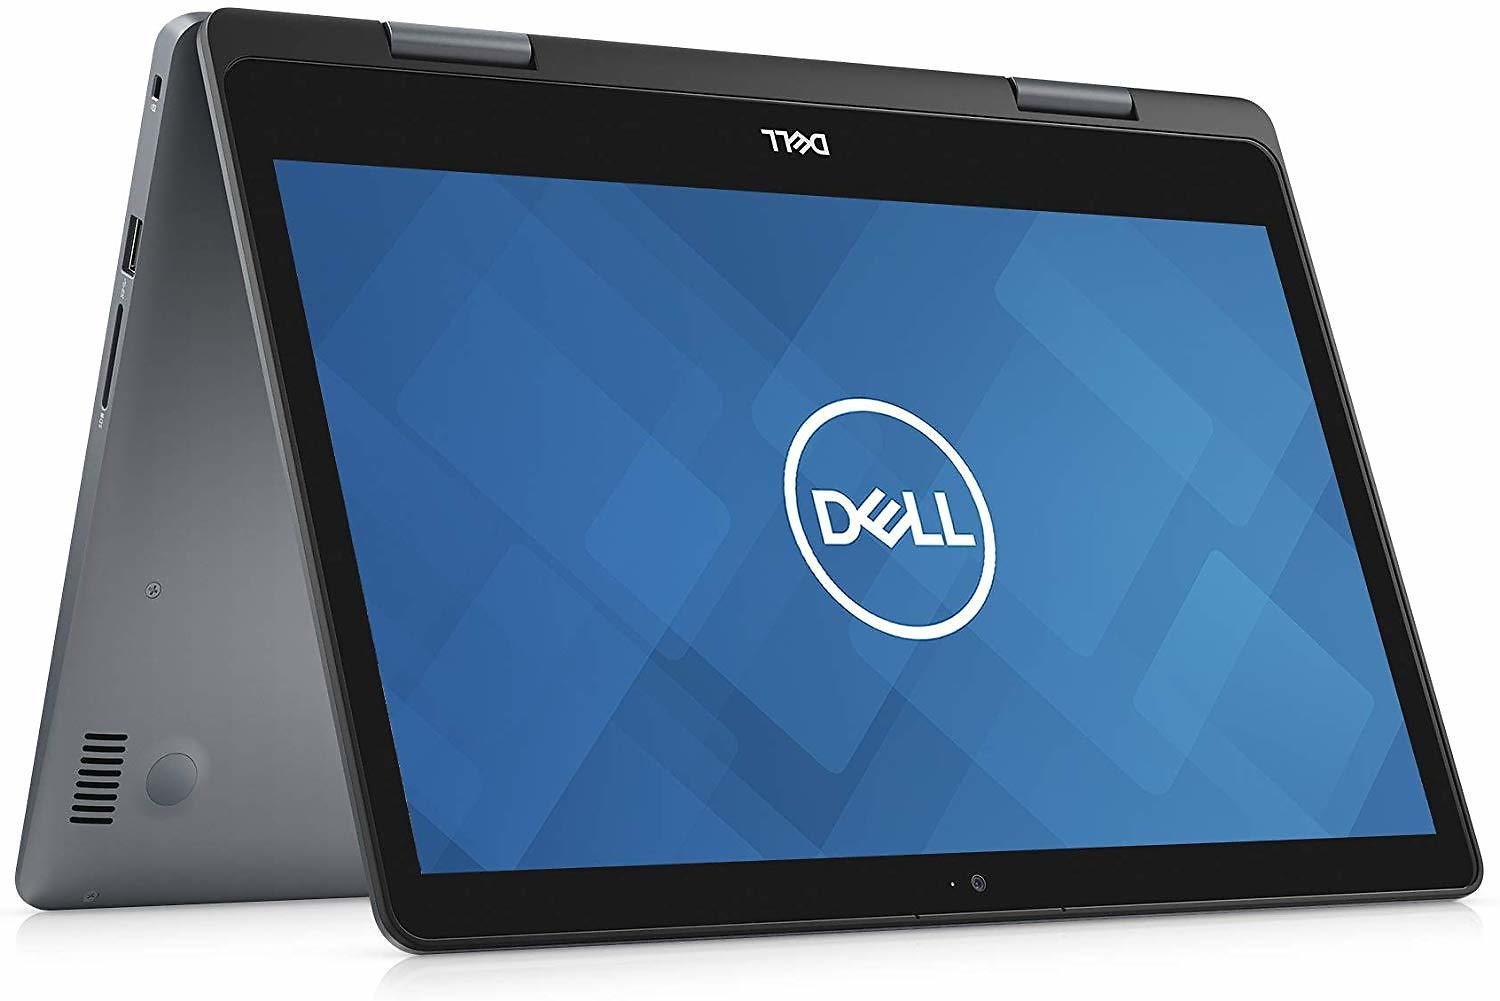 Dell Inspiron 14 2 In 1 Laptop